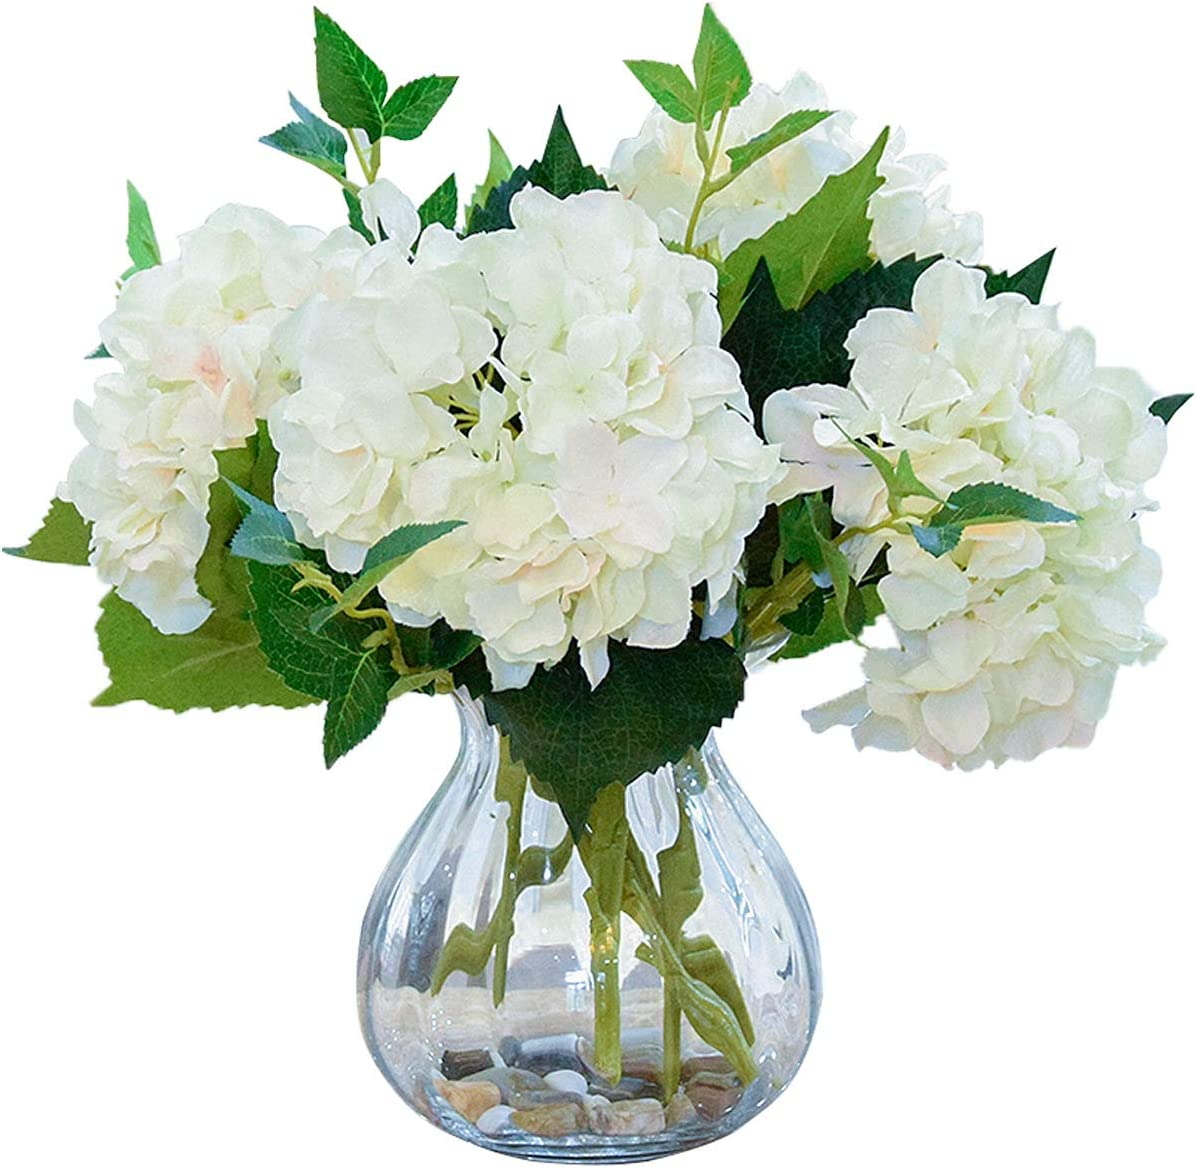 Foraineam 4 Pack Artificial Hydrangea Max 59% OFF White Flower Faux San Diego Mall Bouquets